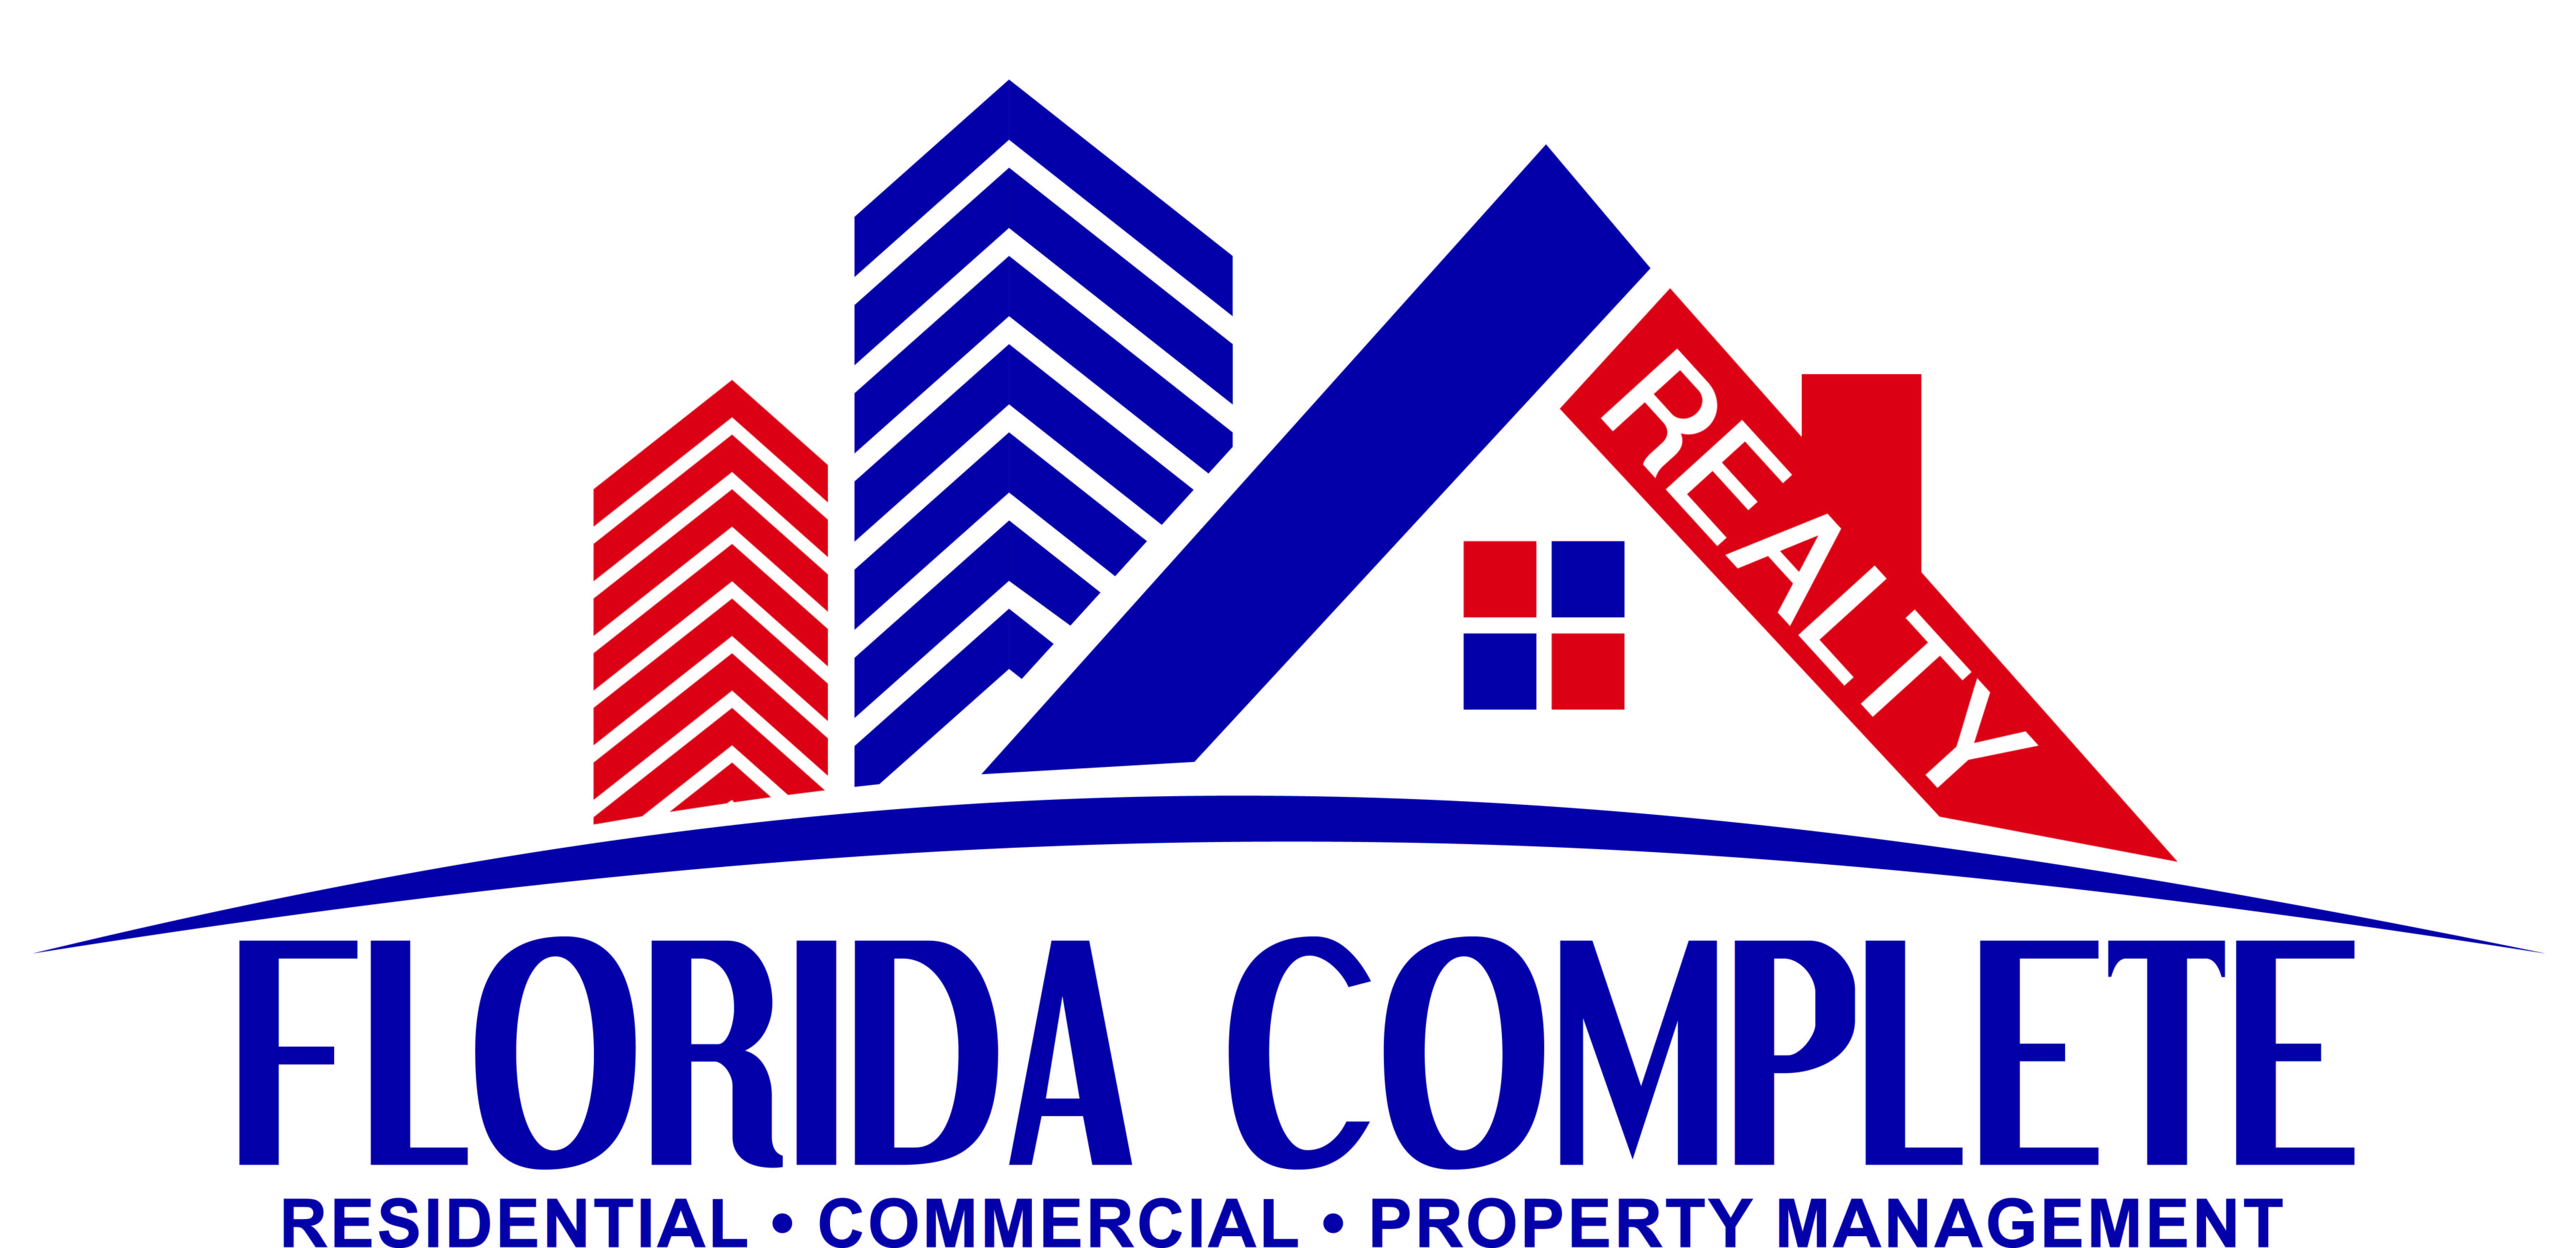 Florida Complete Realty